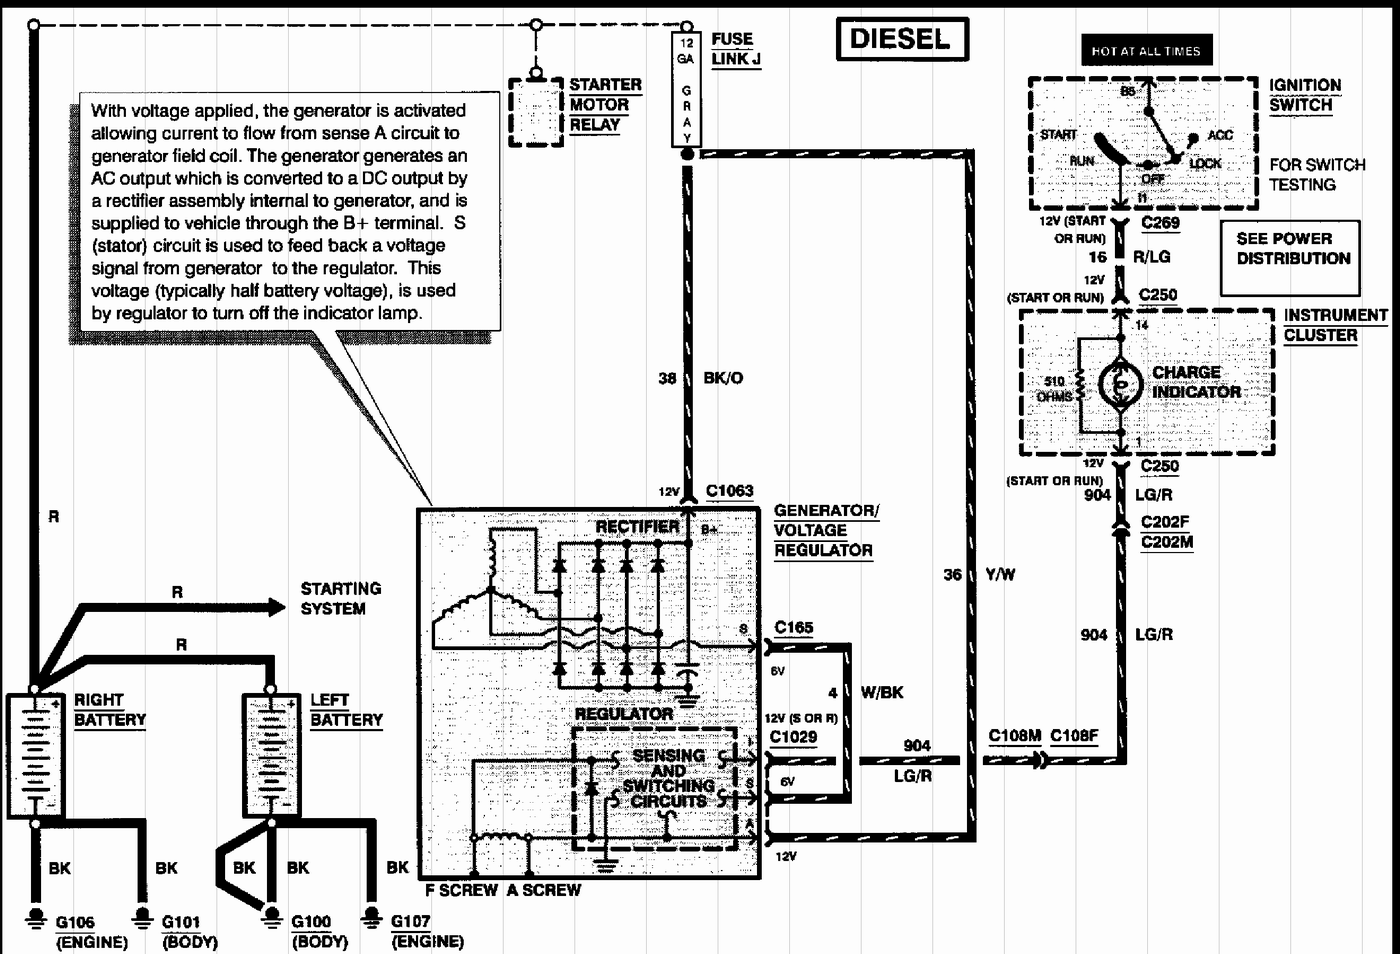 I Need A Wiring Diagram For A 97 F350 7 3 Powerstroke With